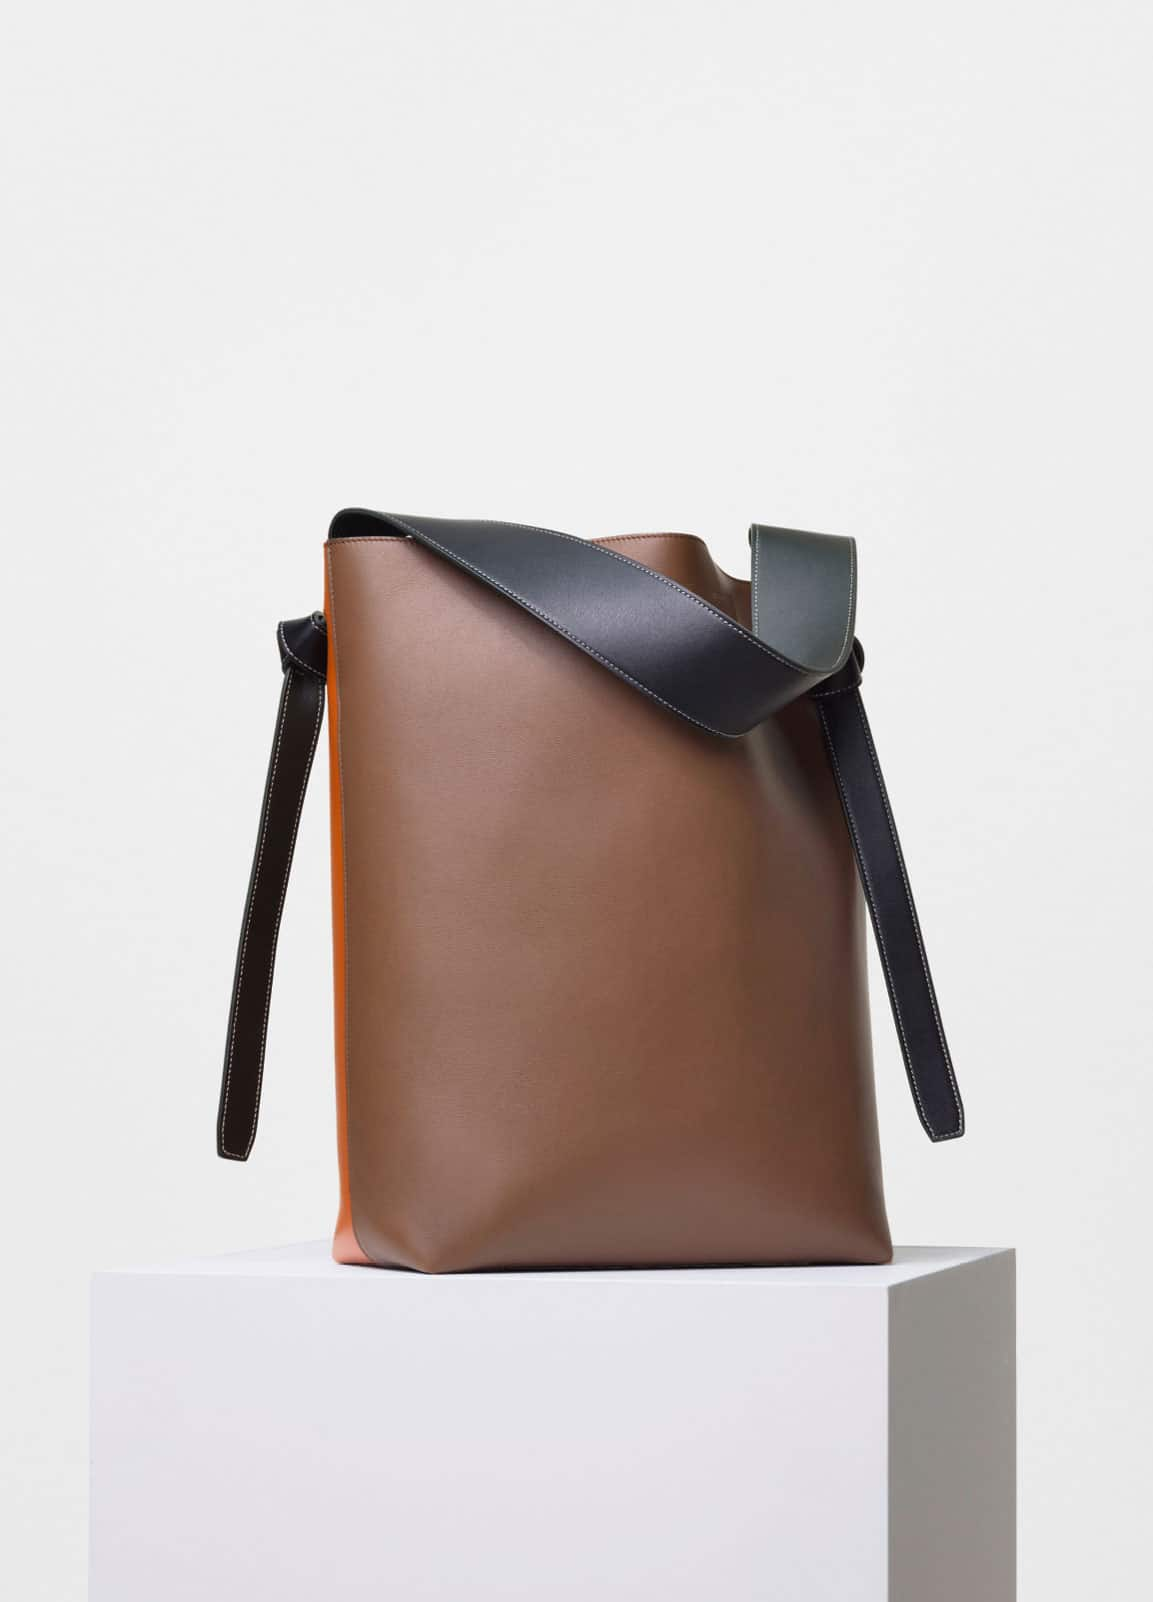 who carries celine handbags - Celine Summer 2016 Bag Collection Featuring Pillow Bags | Spotted ...